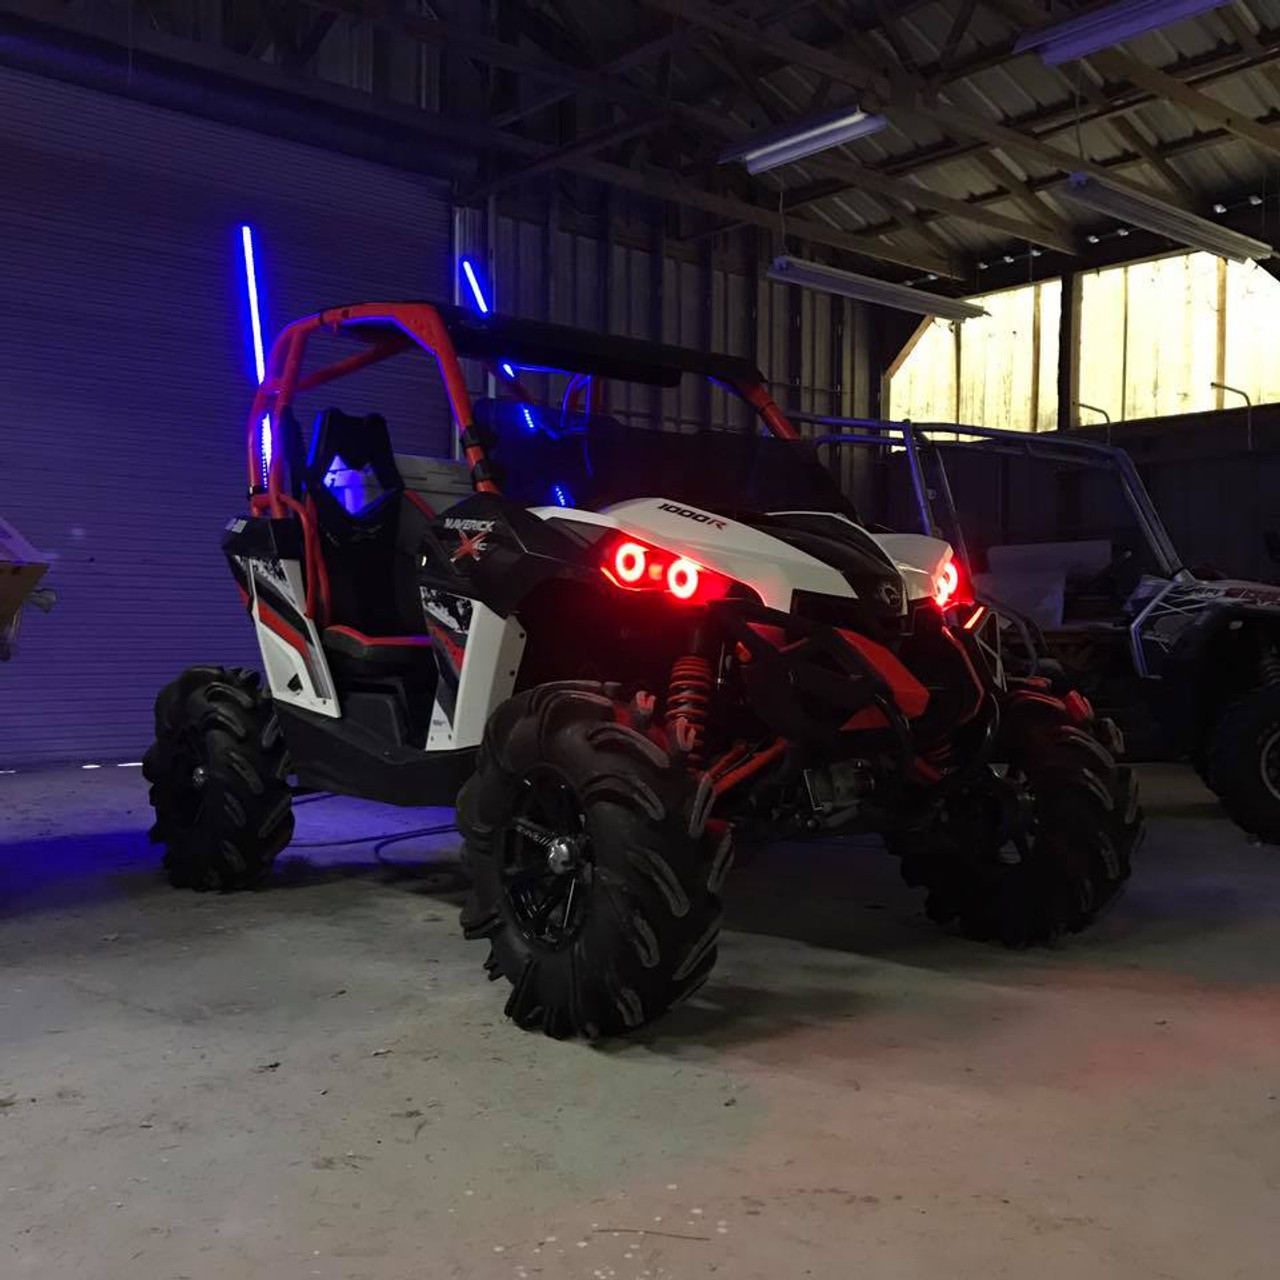 R&R LED Lighting Can-am Halo Kit (Maverick, Commander, Renegade)